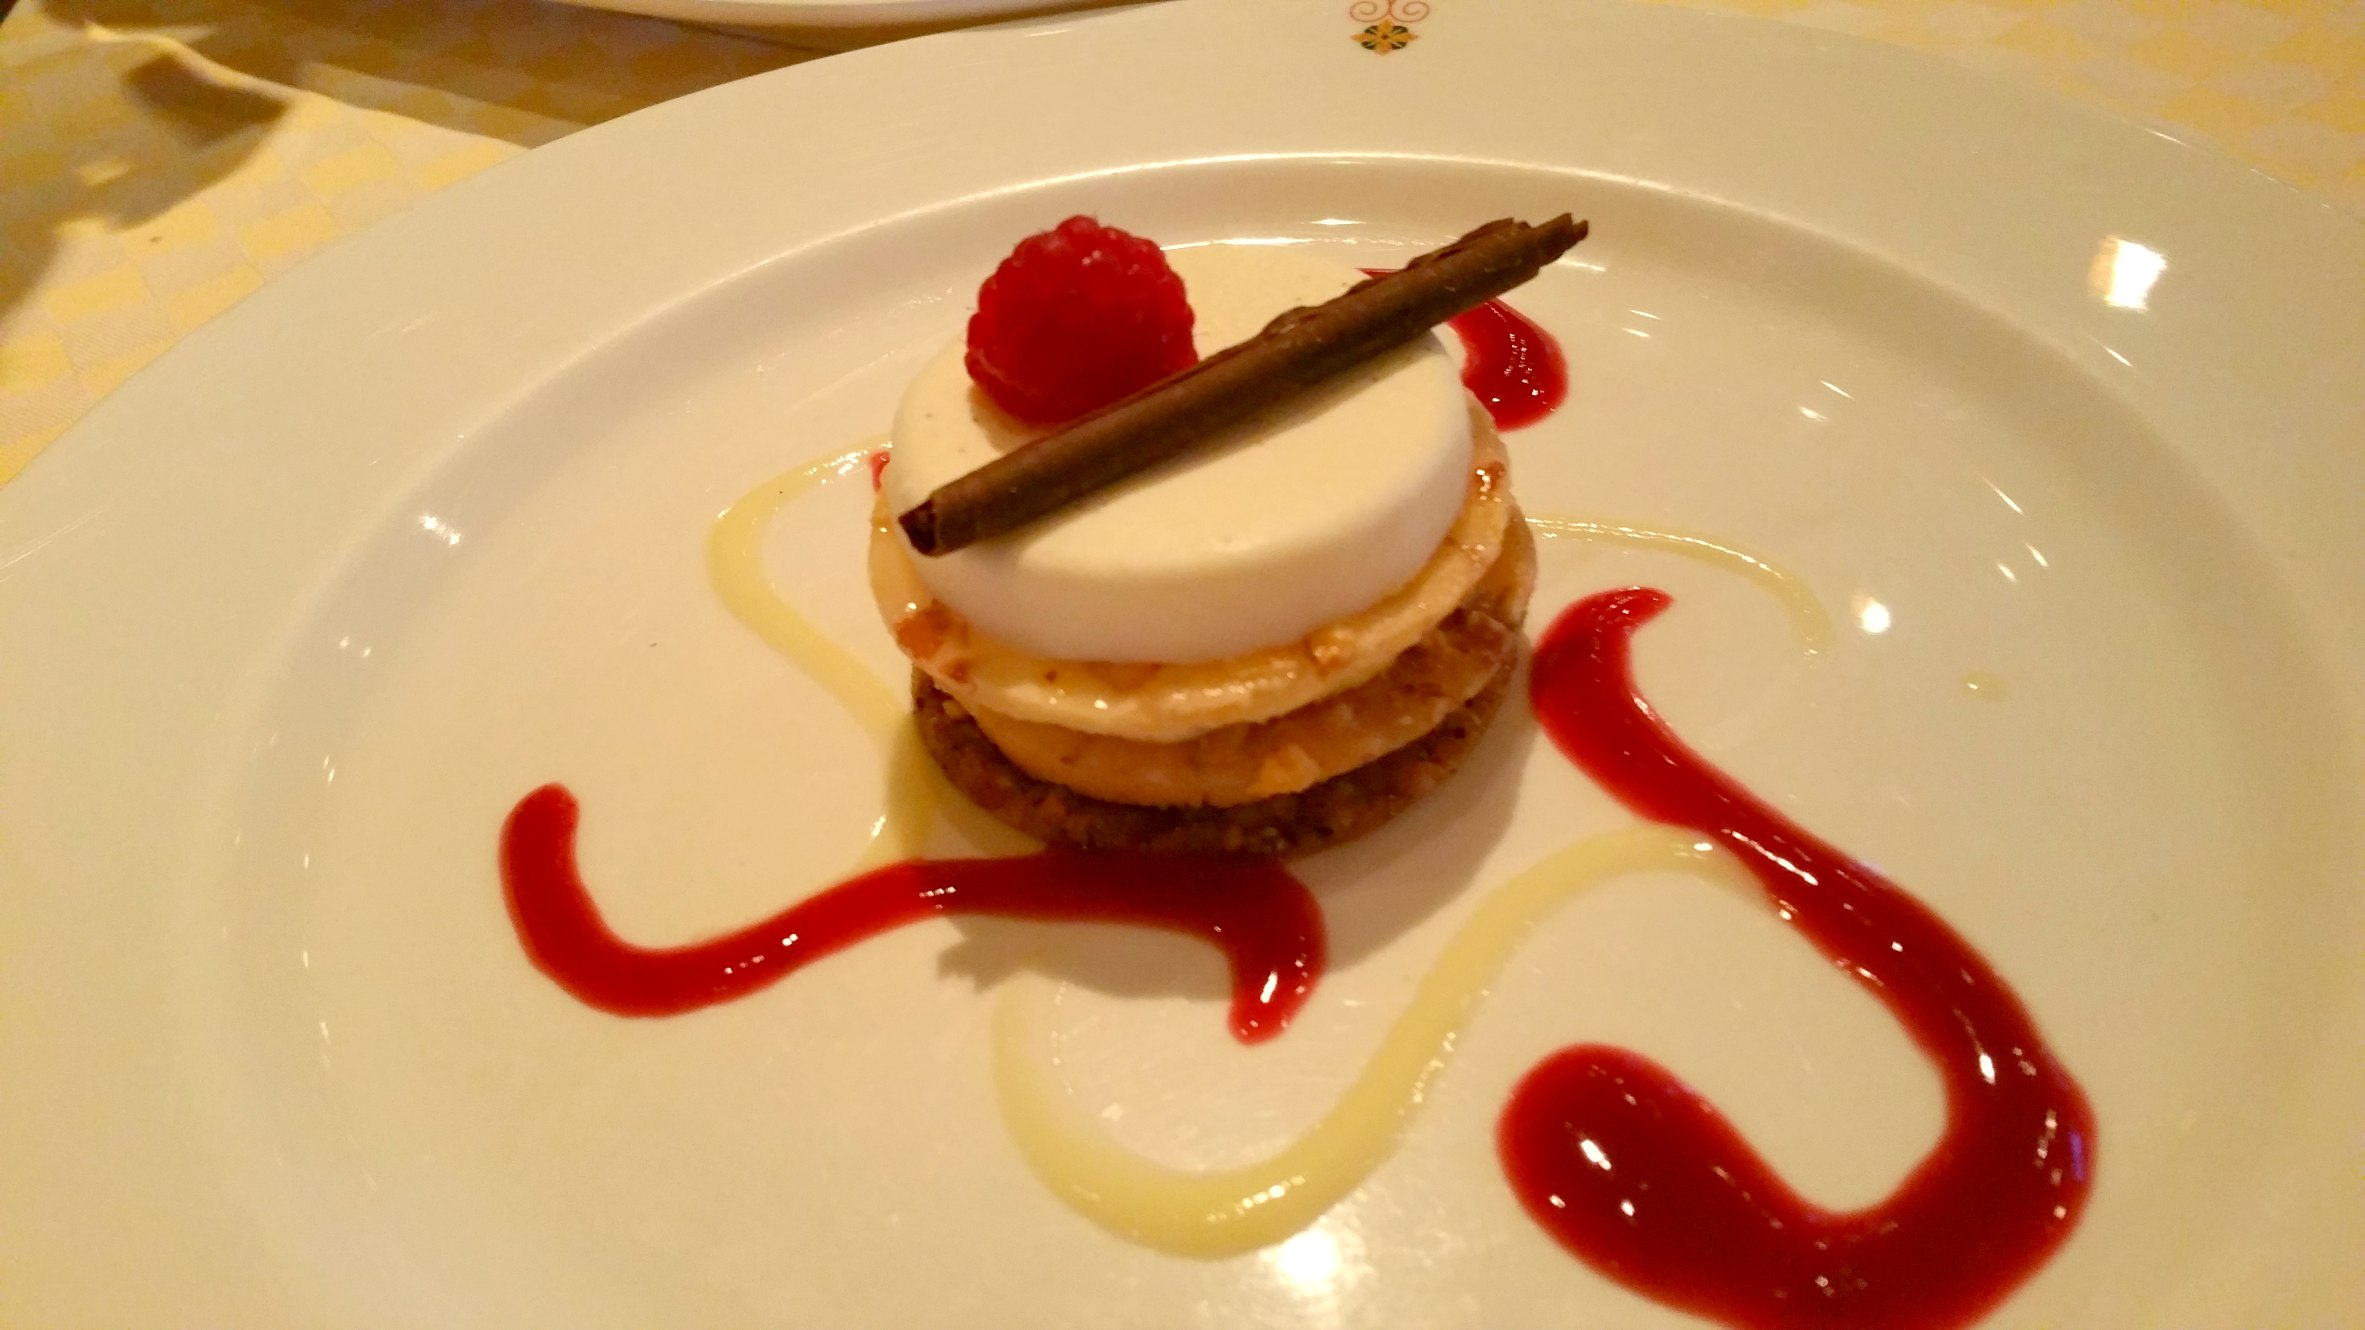 Sabatini's crown princess specialty desserts